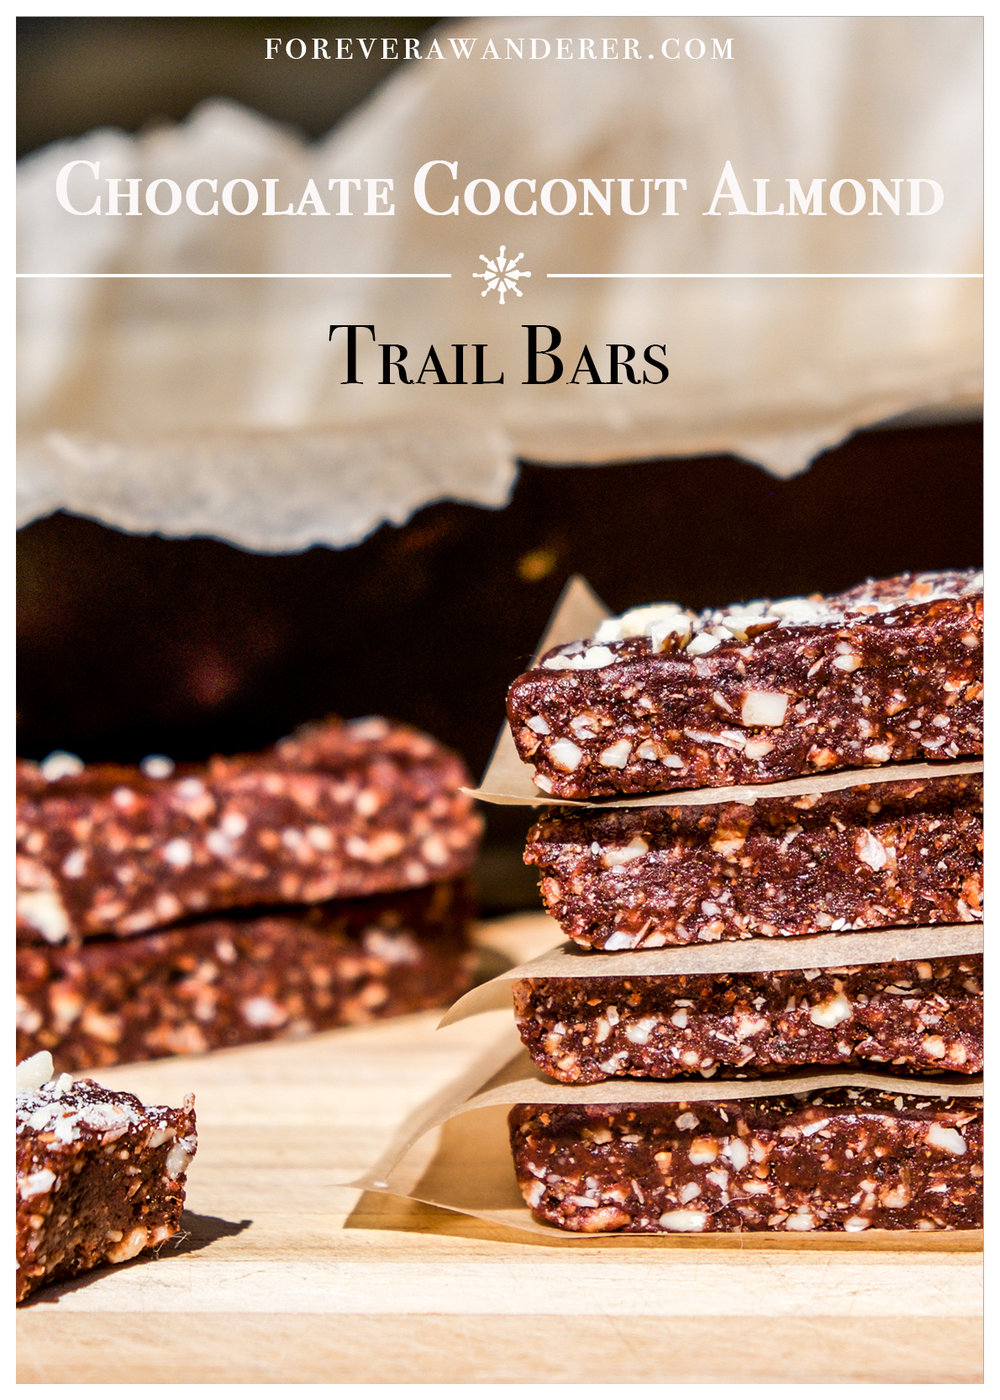 Chocolate Coconut Almond Trail Bars | foreverawanderer.com